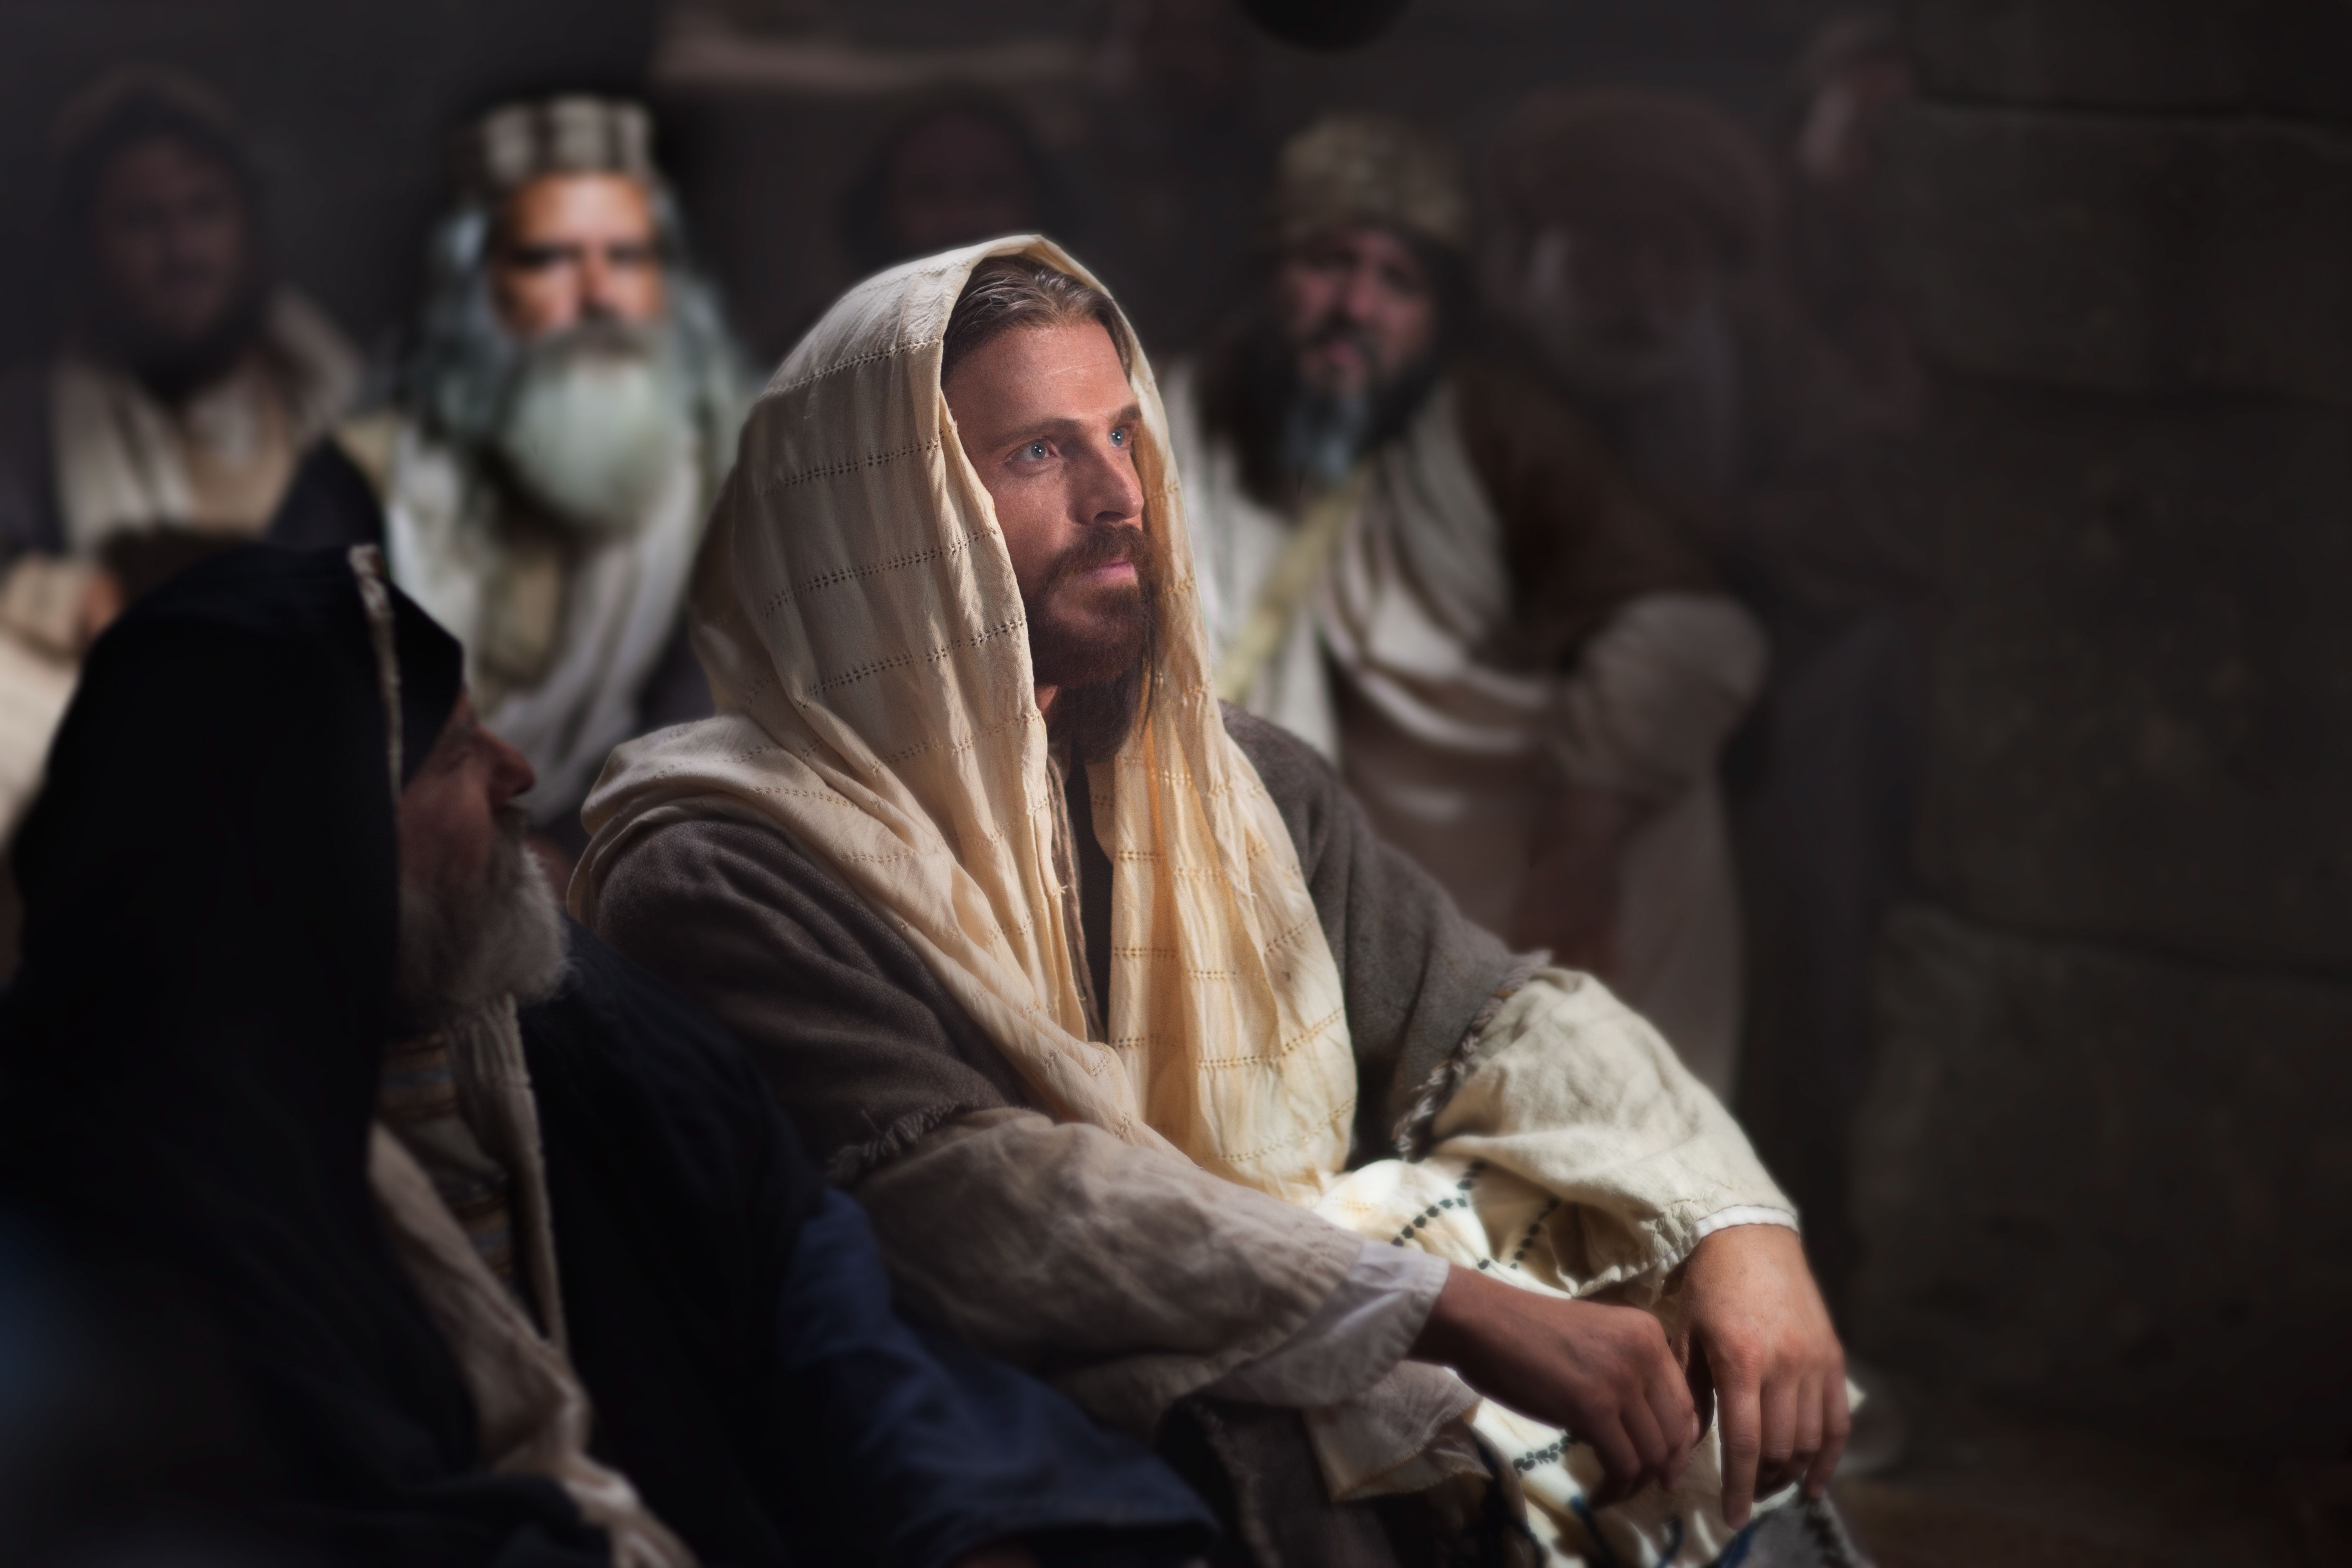 Jesus sits and listens as commotion breaks out after He declares He is the Messiah.